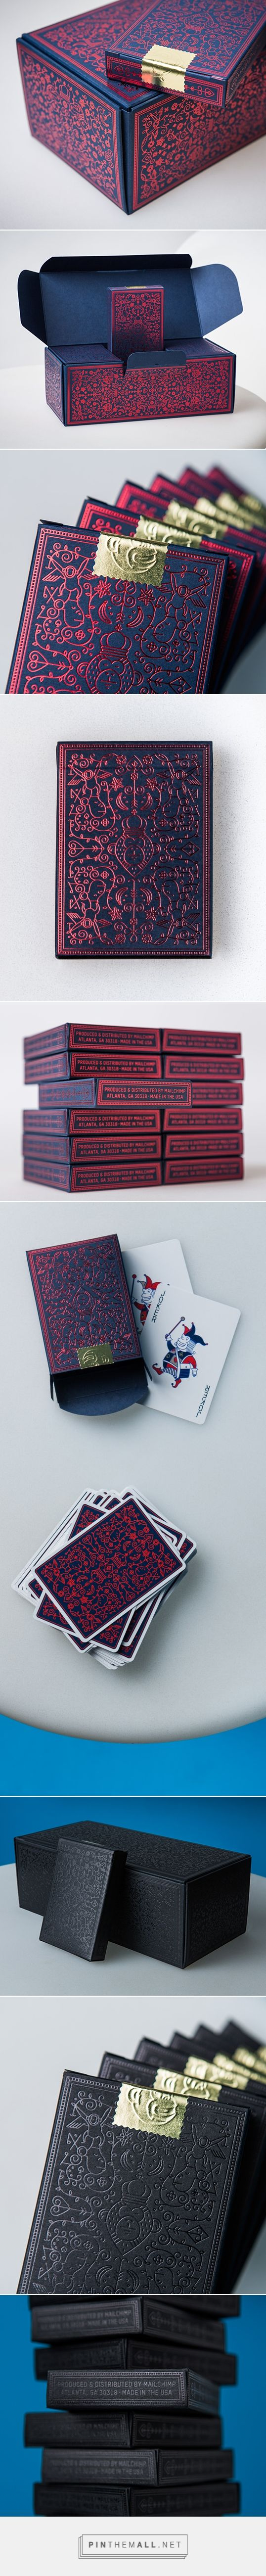 27 Beautiful Packaging Designs 12